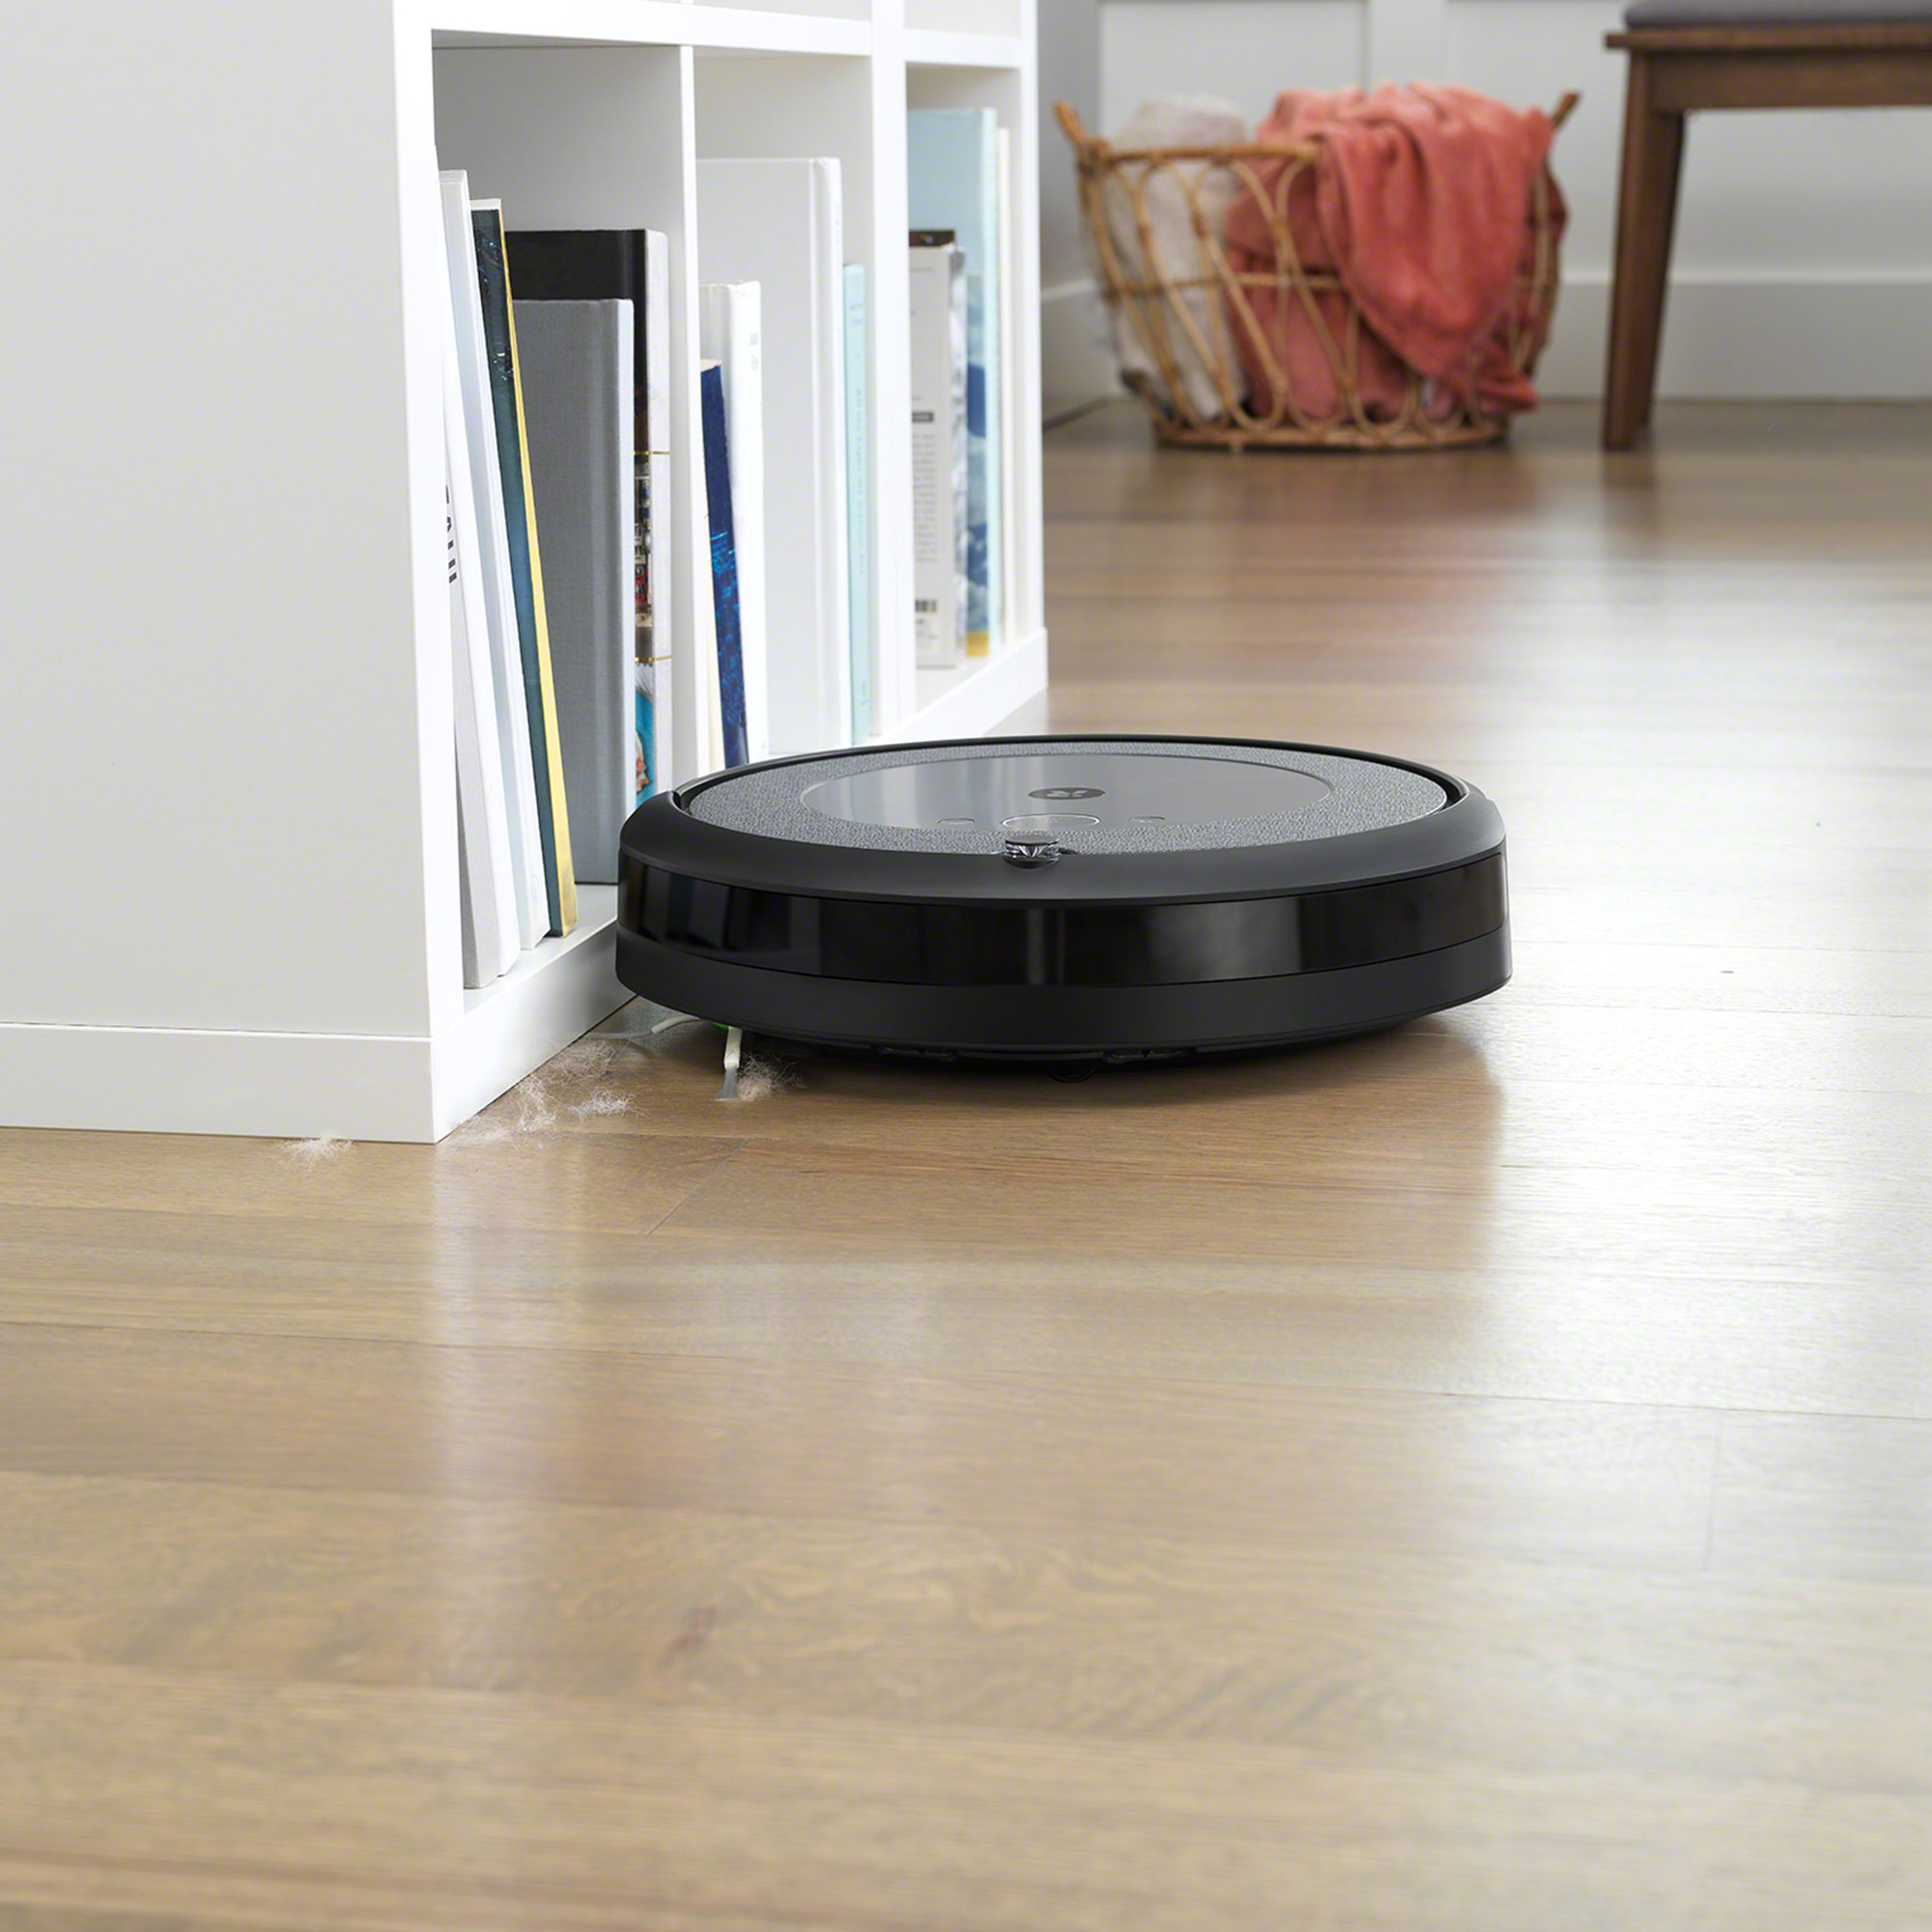 The iRobot Roomba i3+ pulls in stubborn dirt and messes with a 3-Stage Cleaning System that uses Dual Multi-Surface Rubber Brushes, an Edge-Sweeping brush for walls and corners, and 10X the Power-Lifting Suction as compared to Roomba 600 Series.